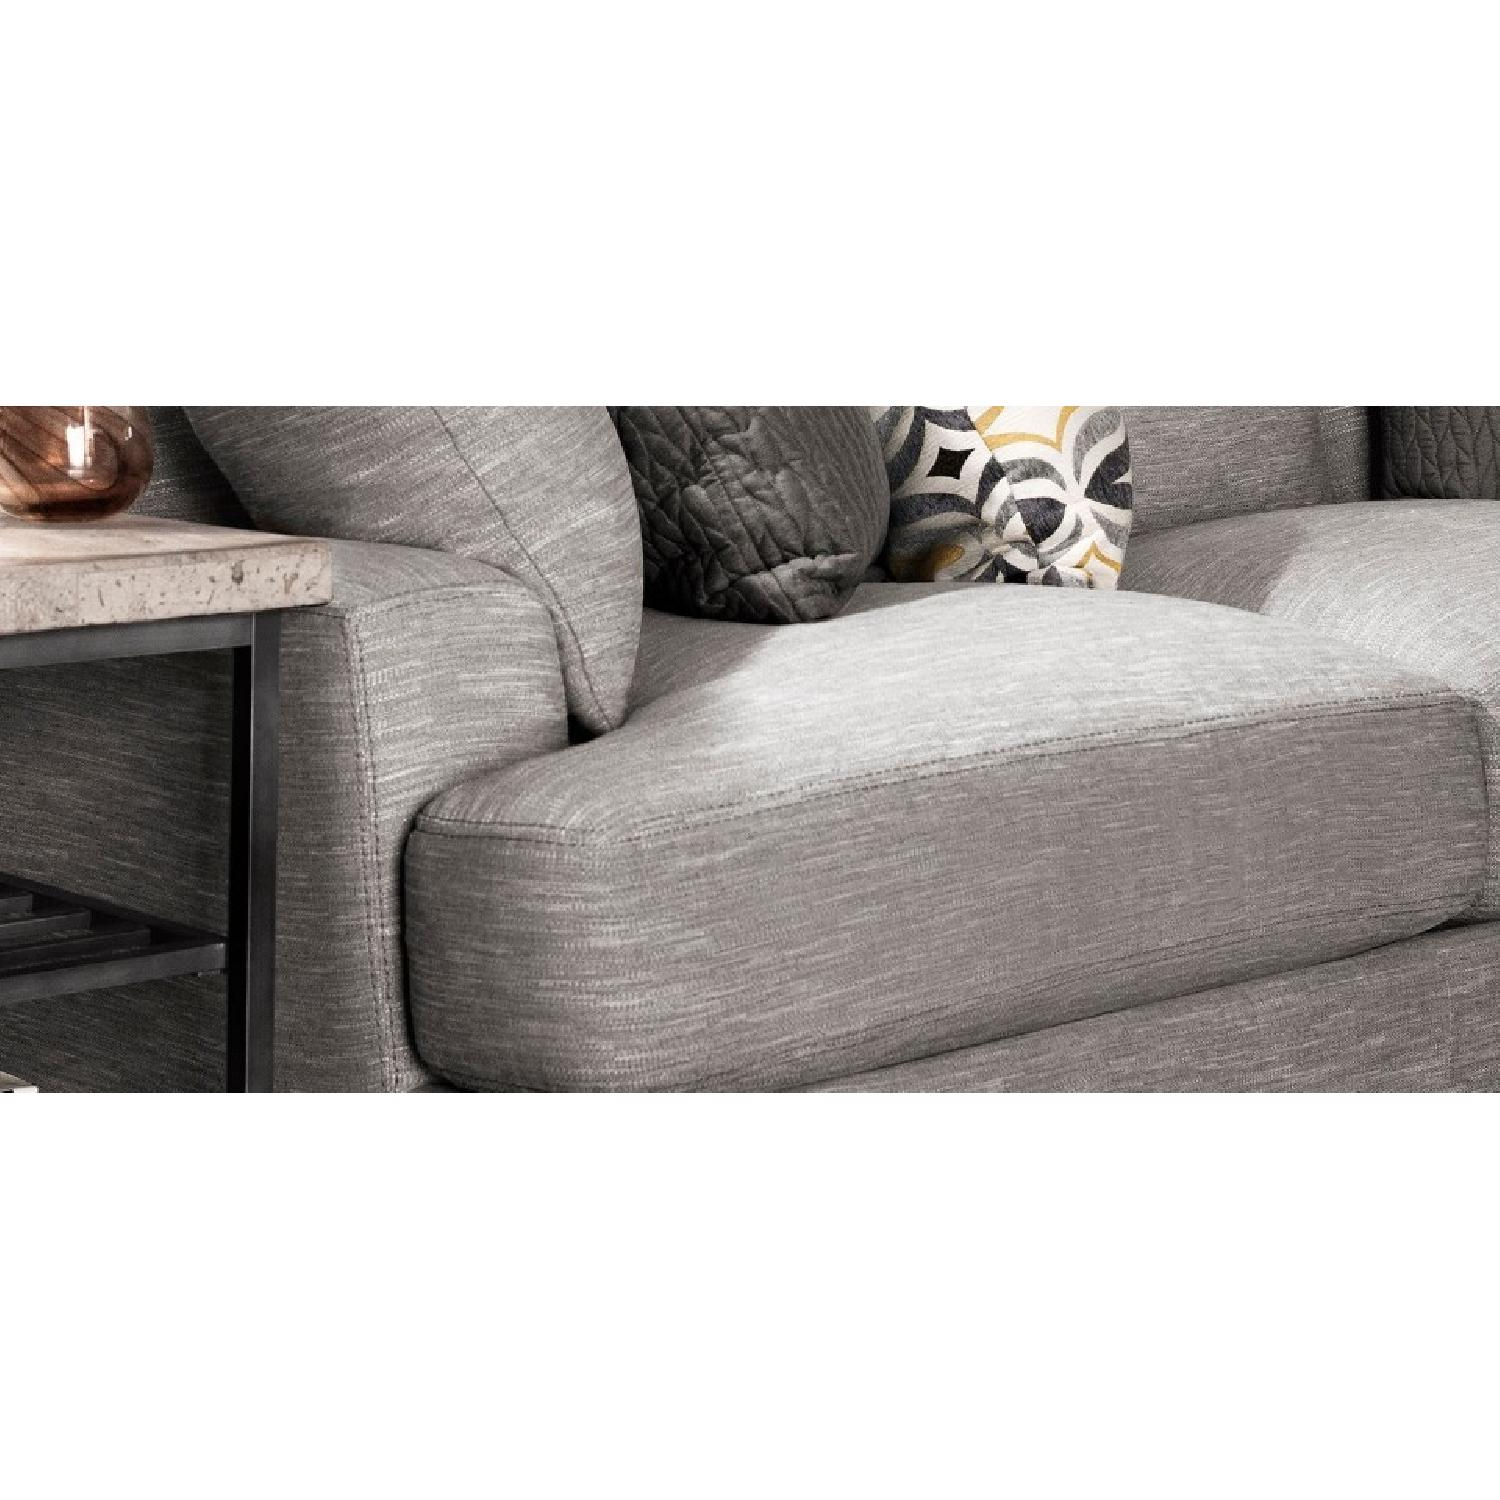 Fantastic Raymour Flanigan Leighton 3 Piece Chaise Sectional Sofa Unemploymentrelief Wooden Chair Designs For Living Room Unemploymentrelieforg